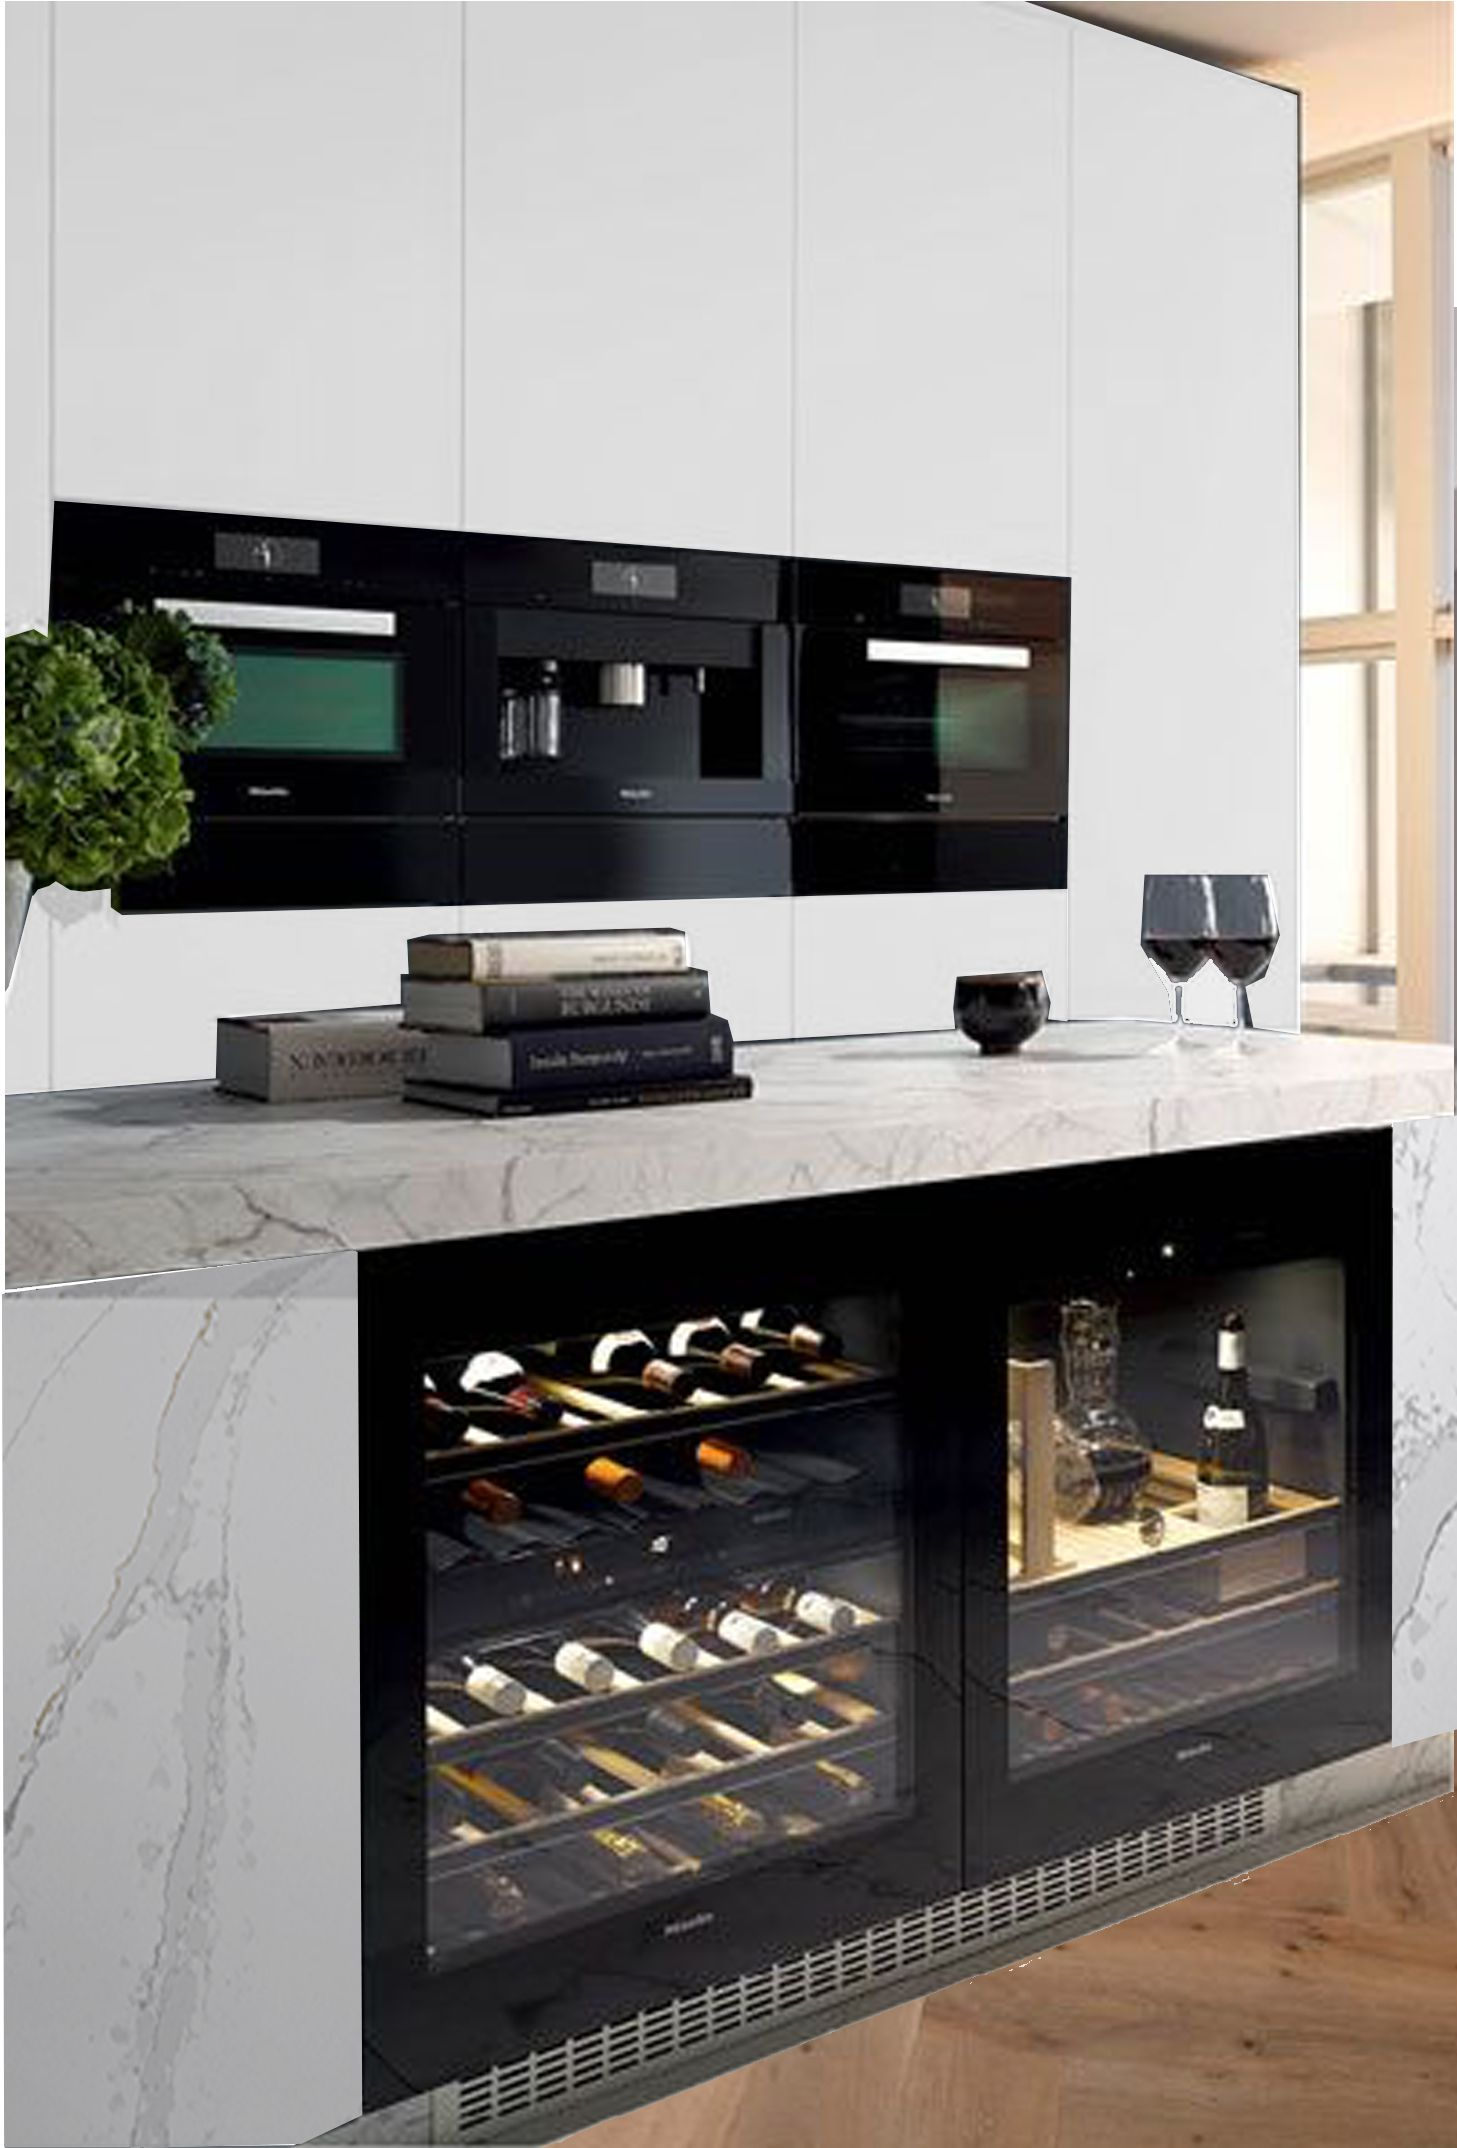 White Marble Kitchen Island With Wine Fridges The Other One Should